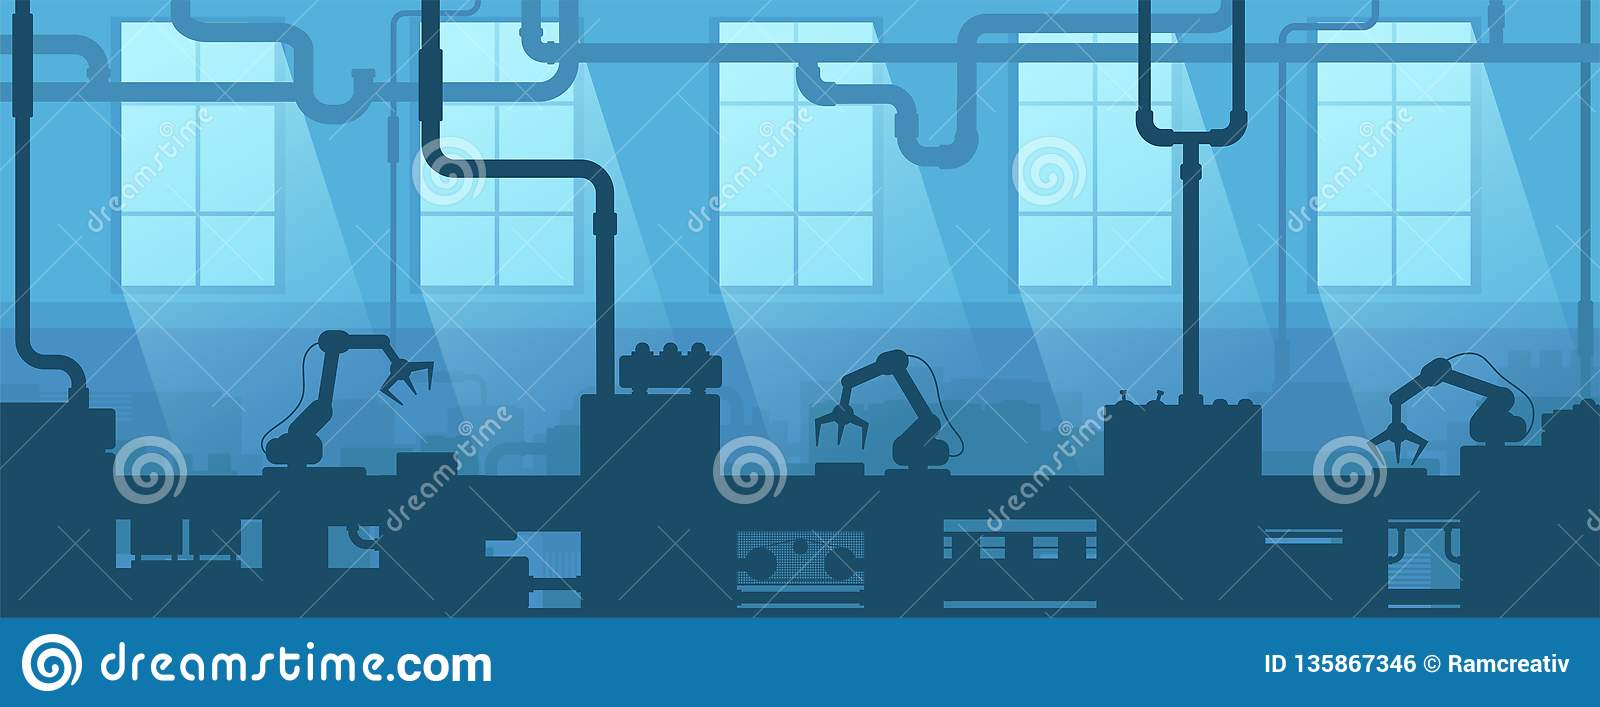 Industrial interior of factory, plant. Silhouette industry enterprise. Manufacturing 4.0